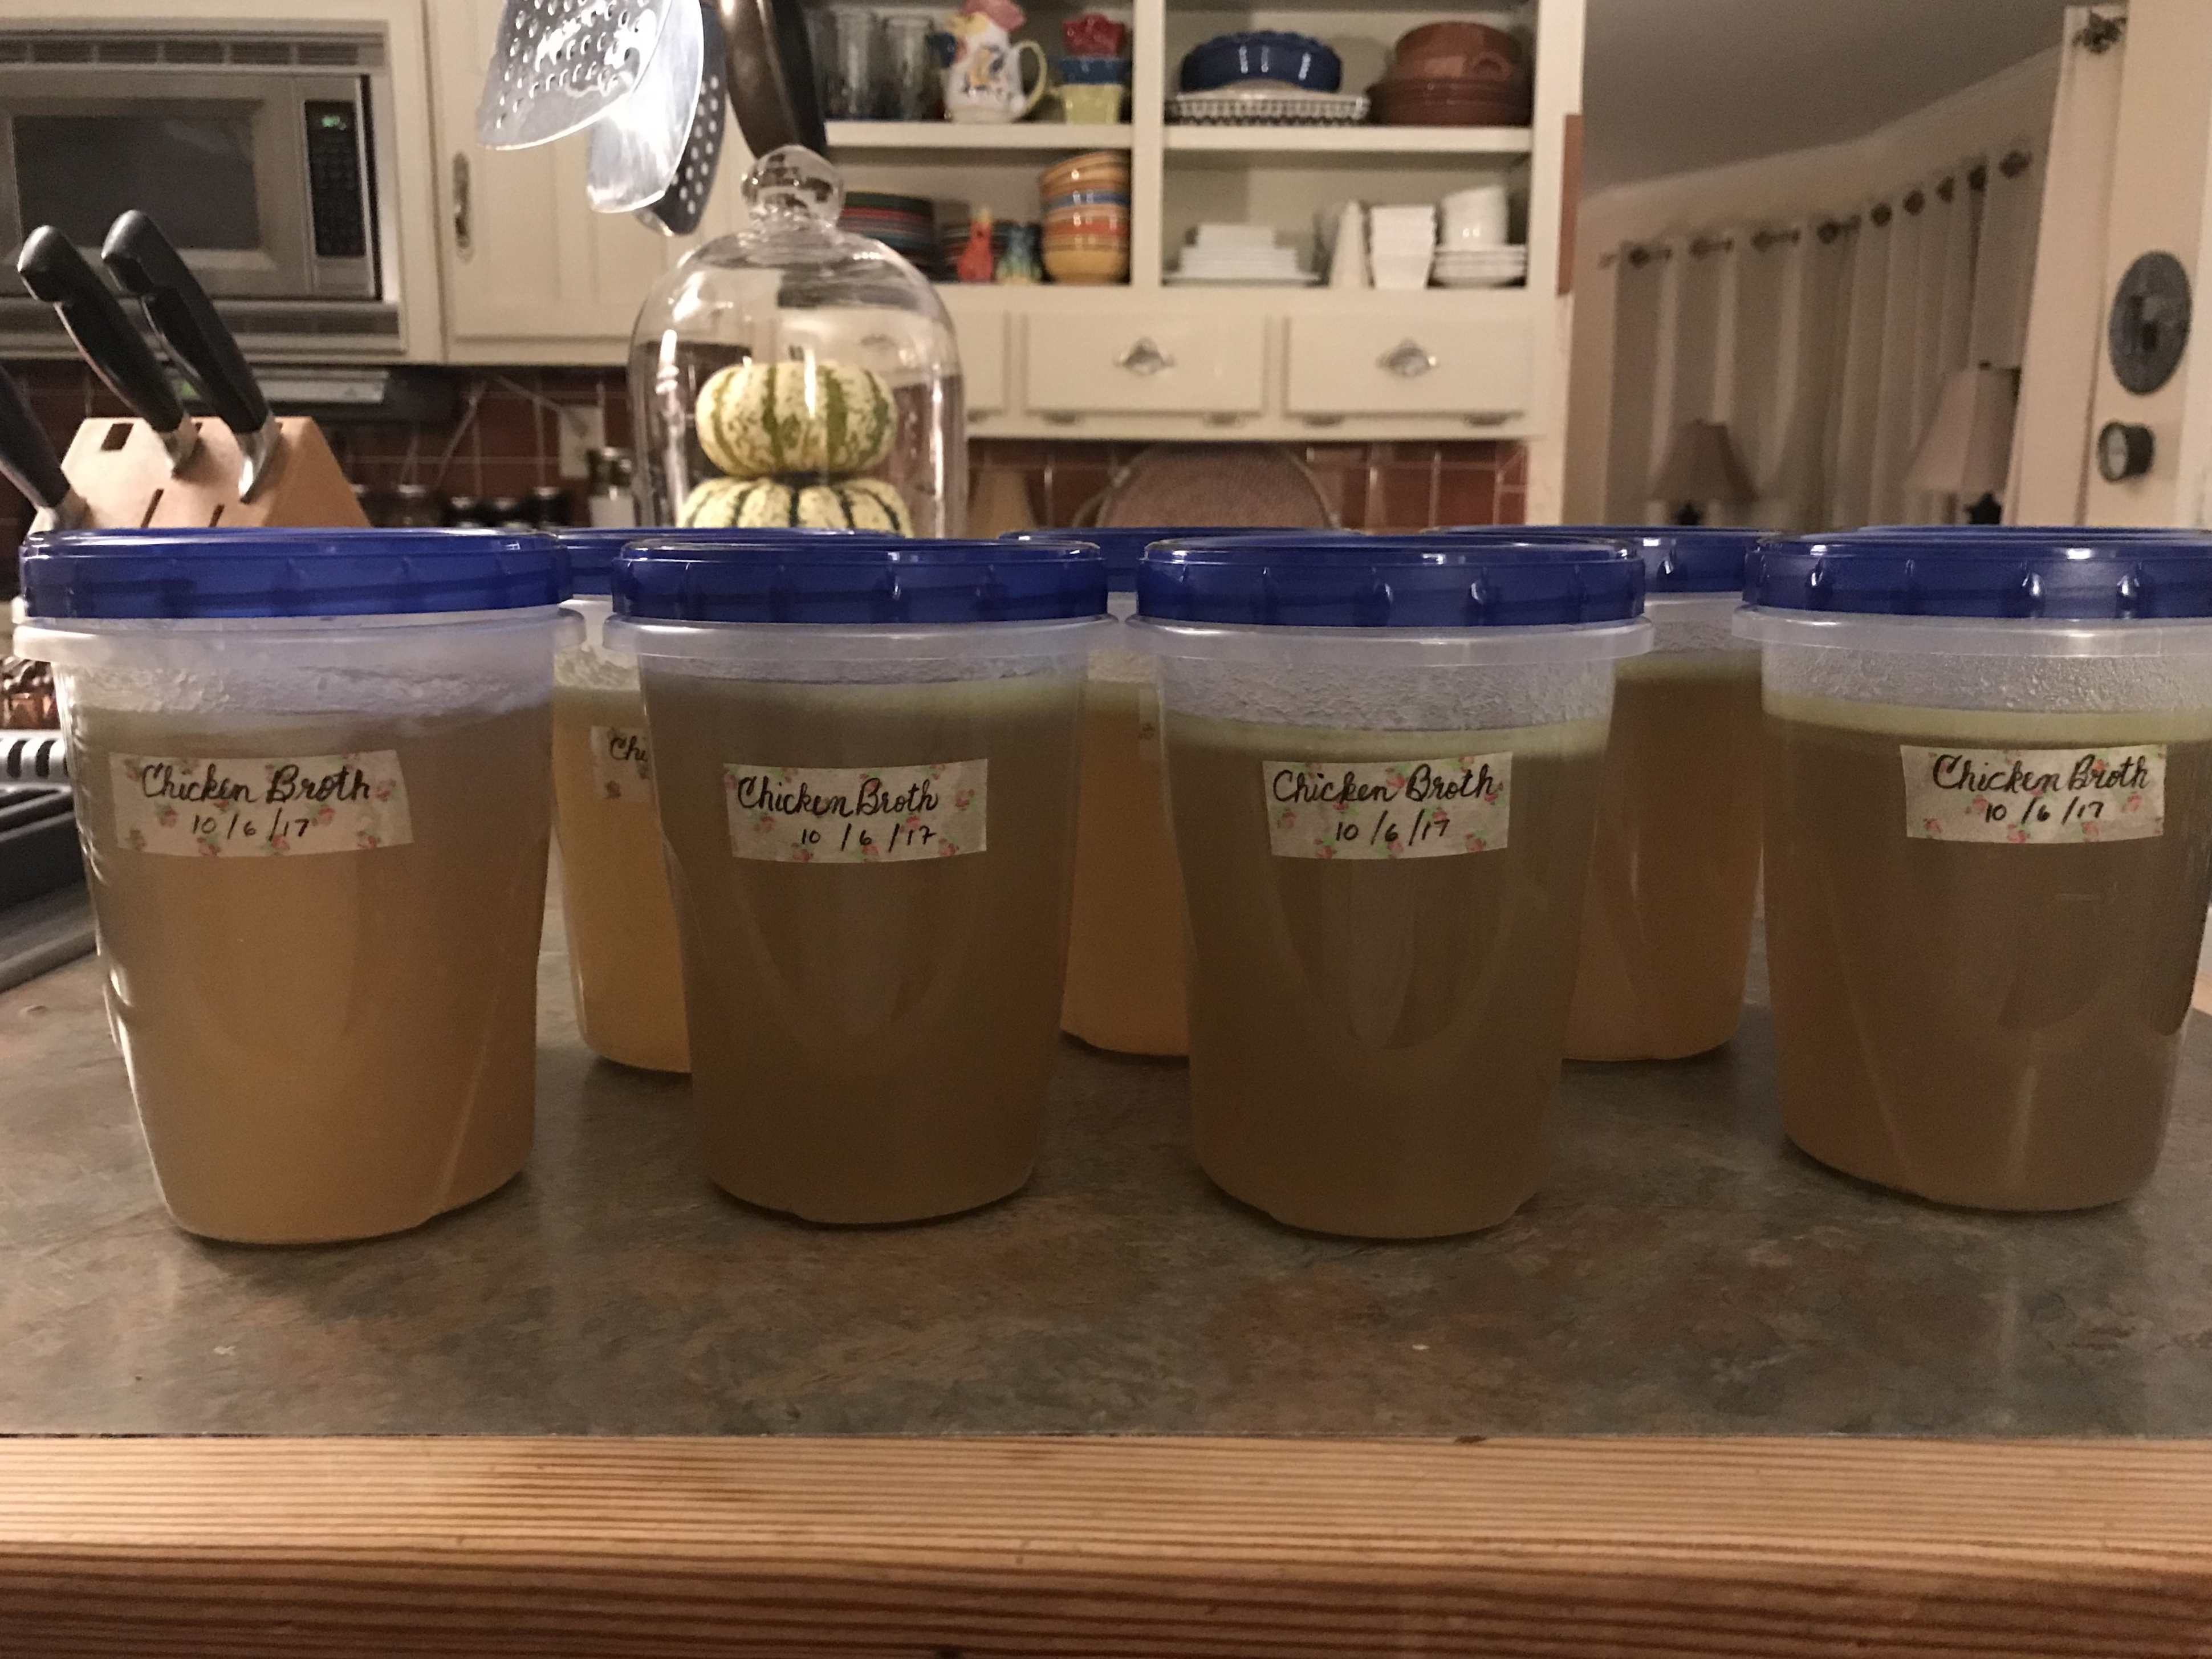 Finished homemade chicken broth, labeled and dated